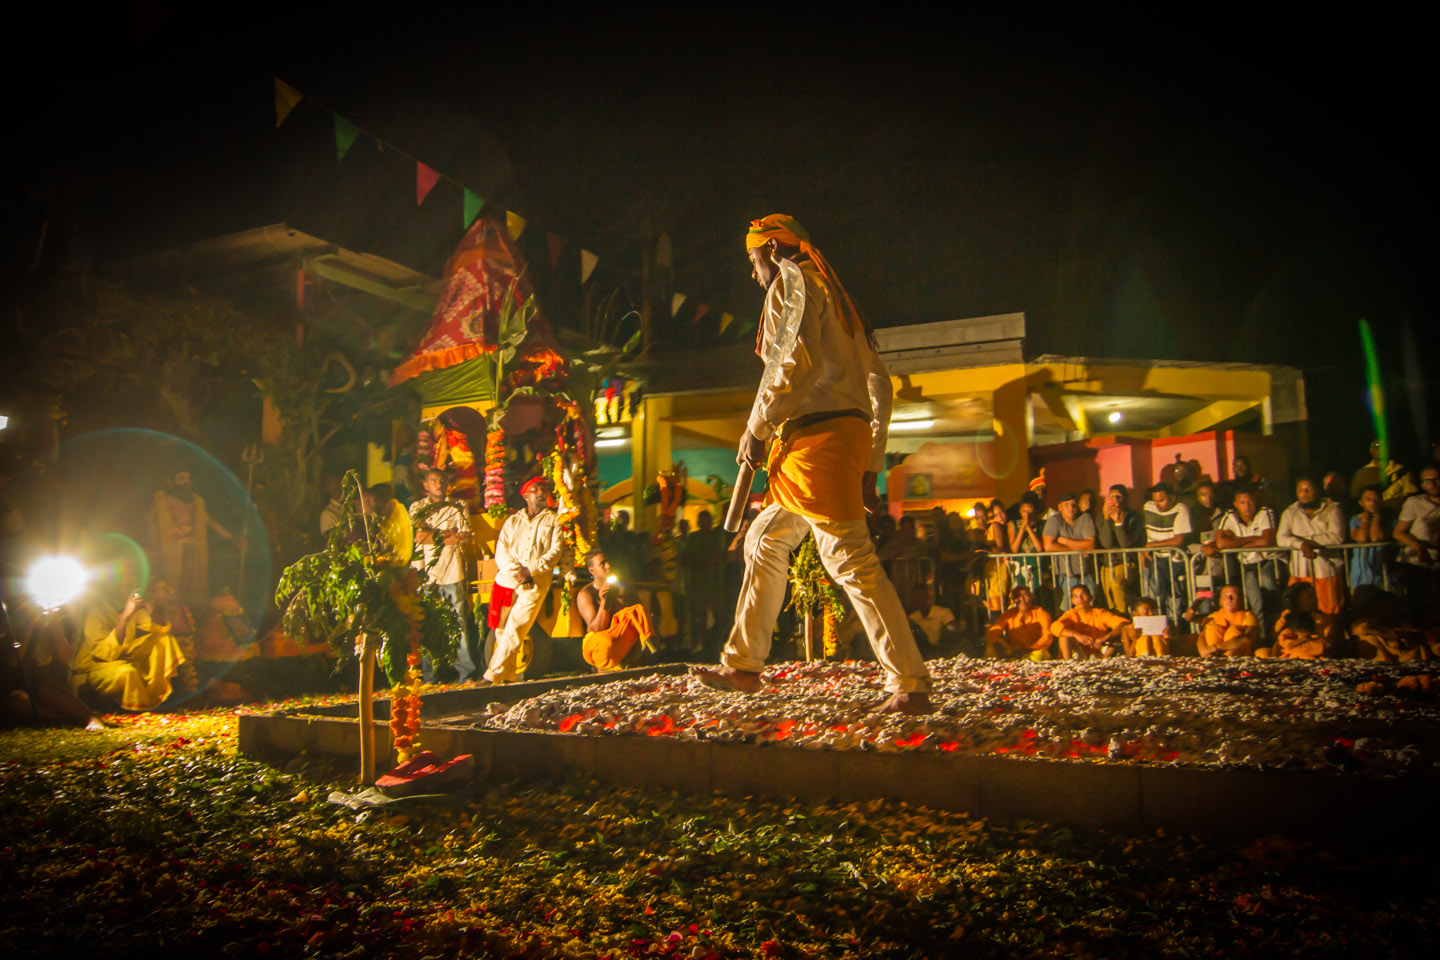 Old tradition fire walker at Marche sur le feu firewalk La Reunion